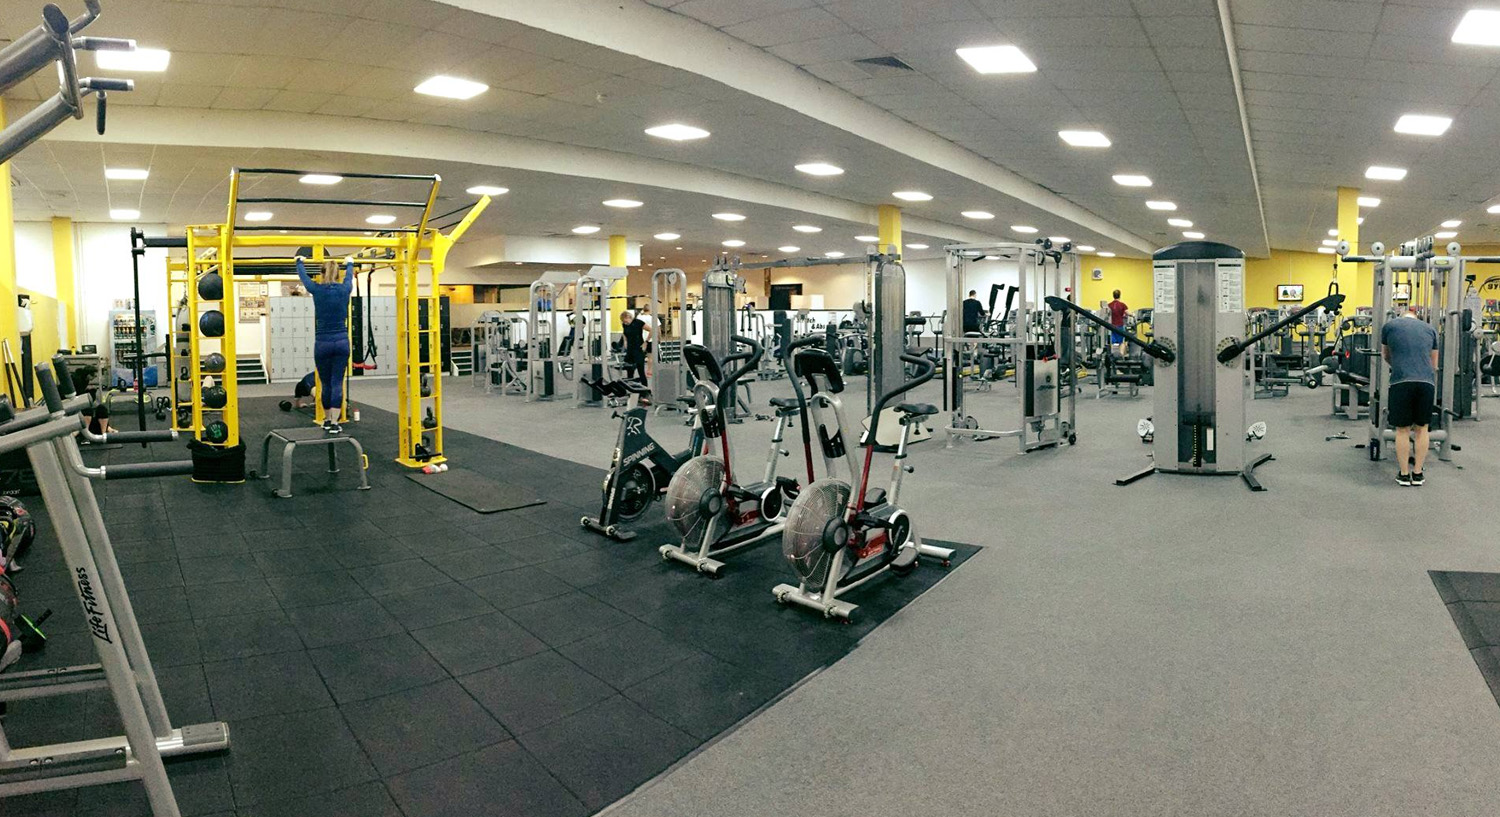 Hour gym in portsmouth with fitness classes pool village gym